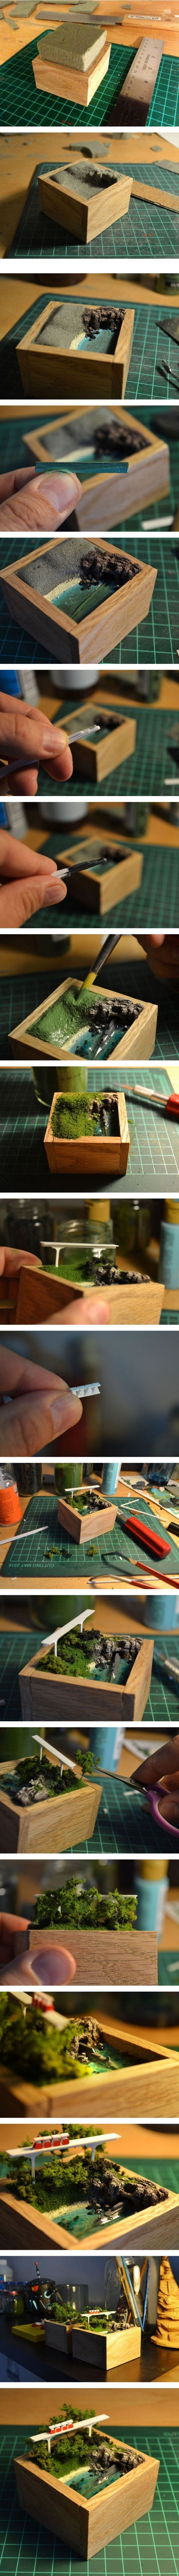 58 best makett images on Pinterest | Miniatures, Model building and ...